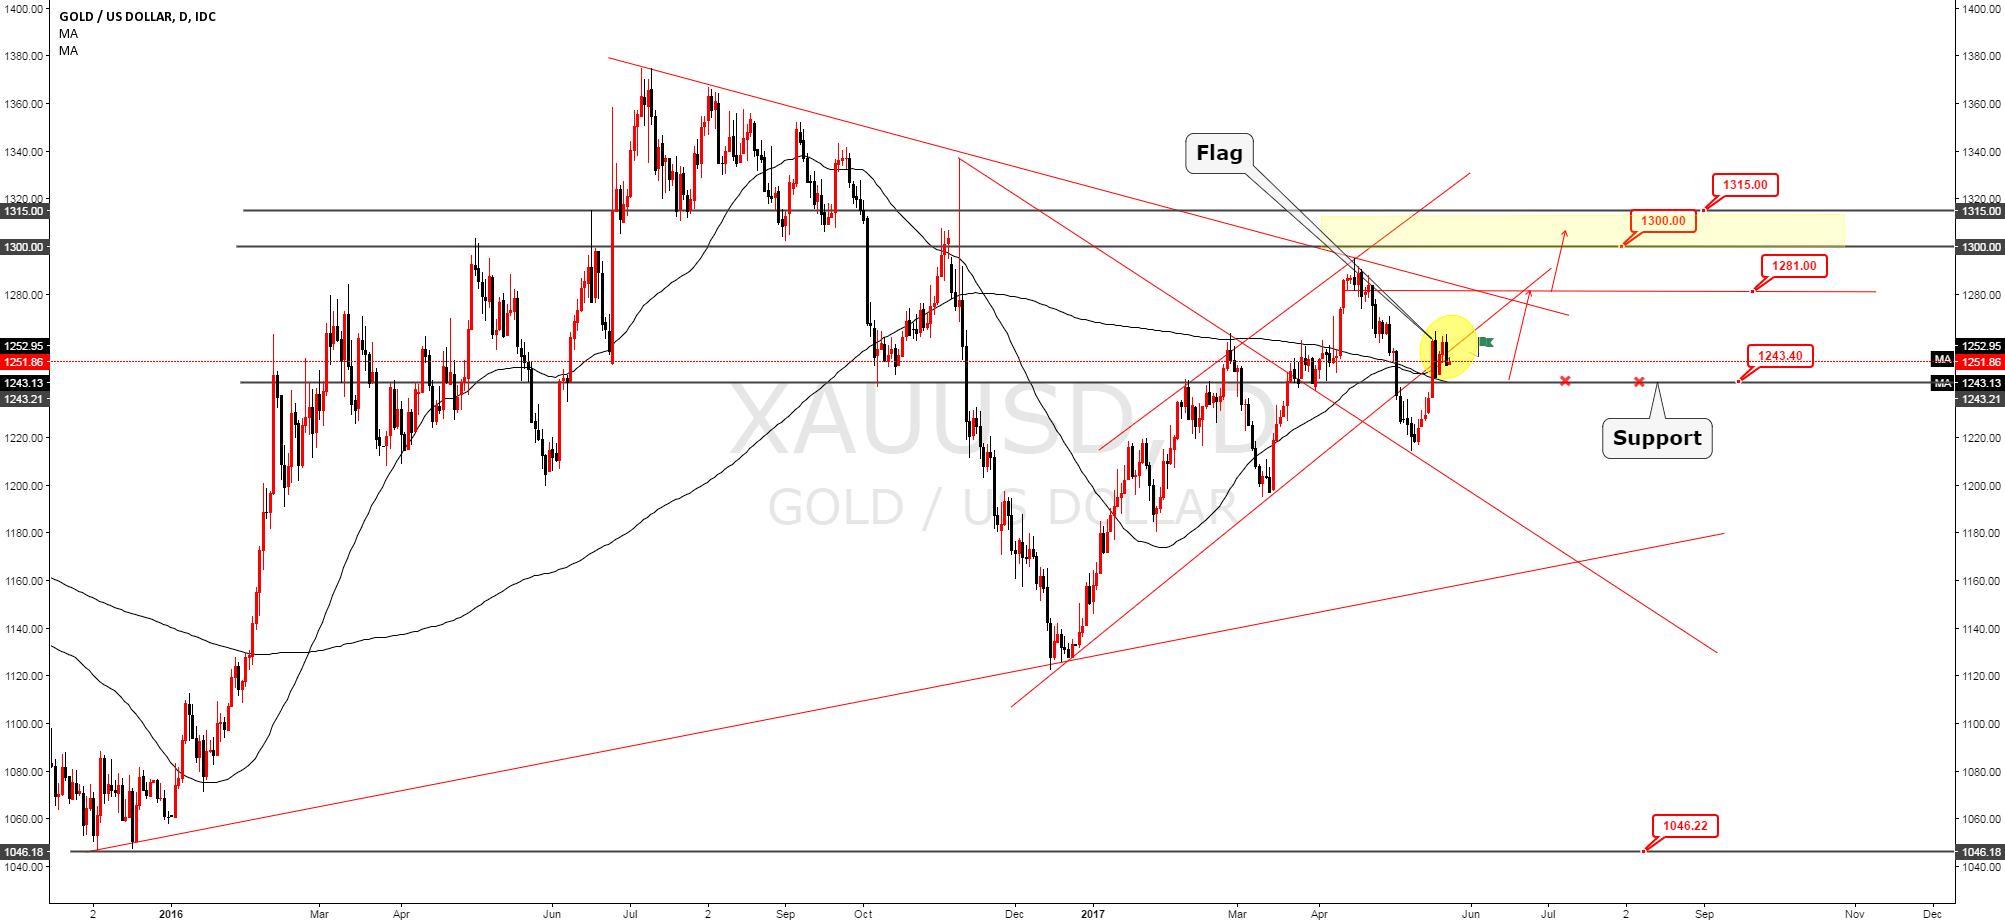 XAUUSD flag target 1315 support 1243.40